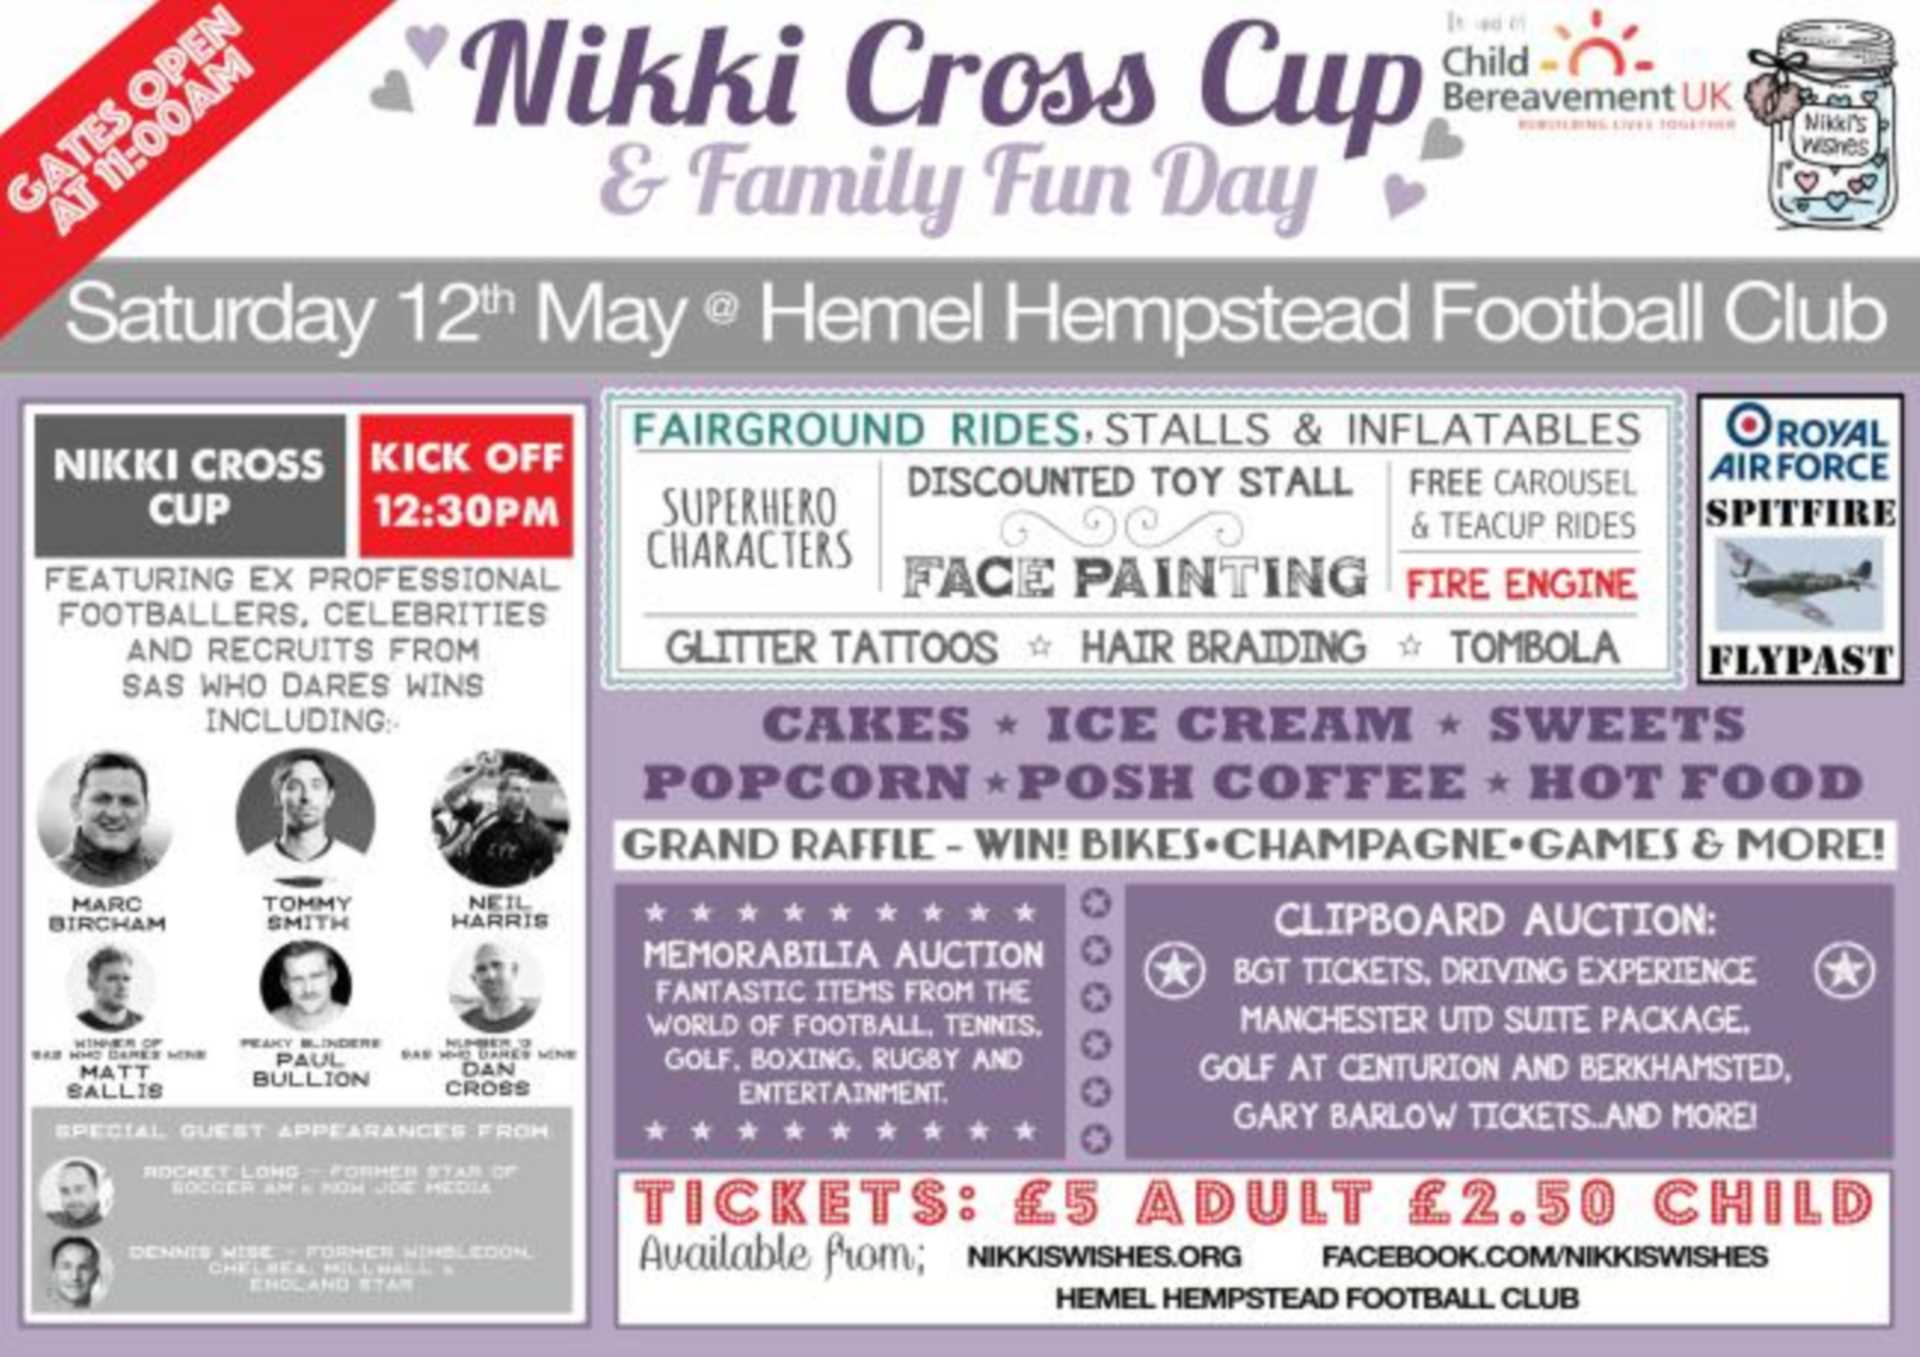 Nikki Cross - Child Bereavement UK - 12th May 2018 - Hemel Hempstead football club, HP2 4HW